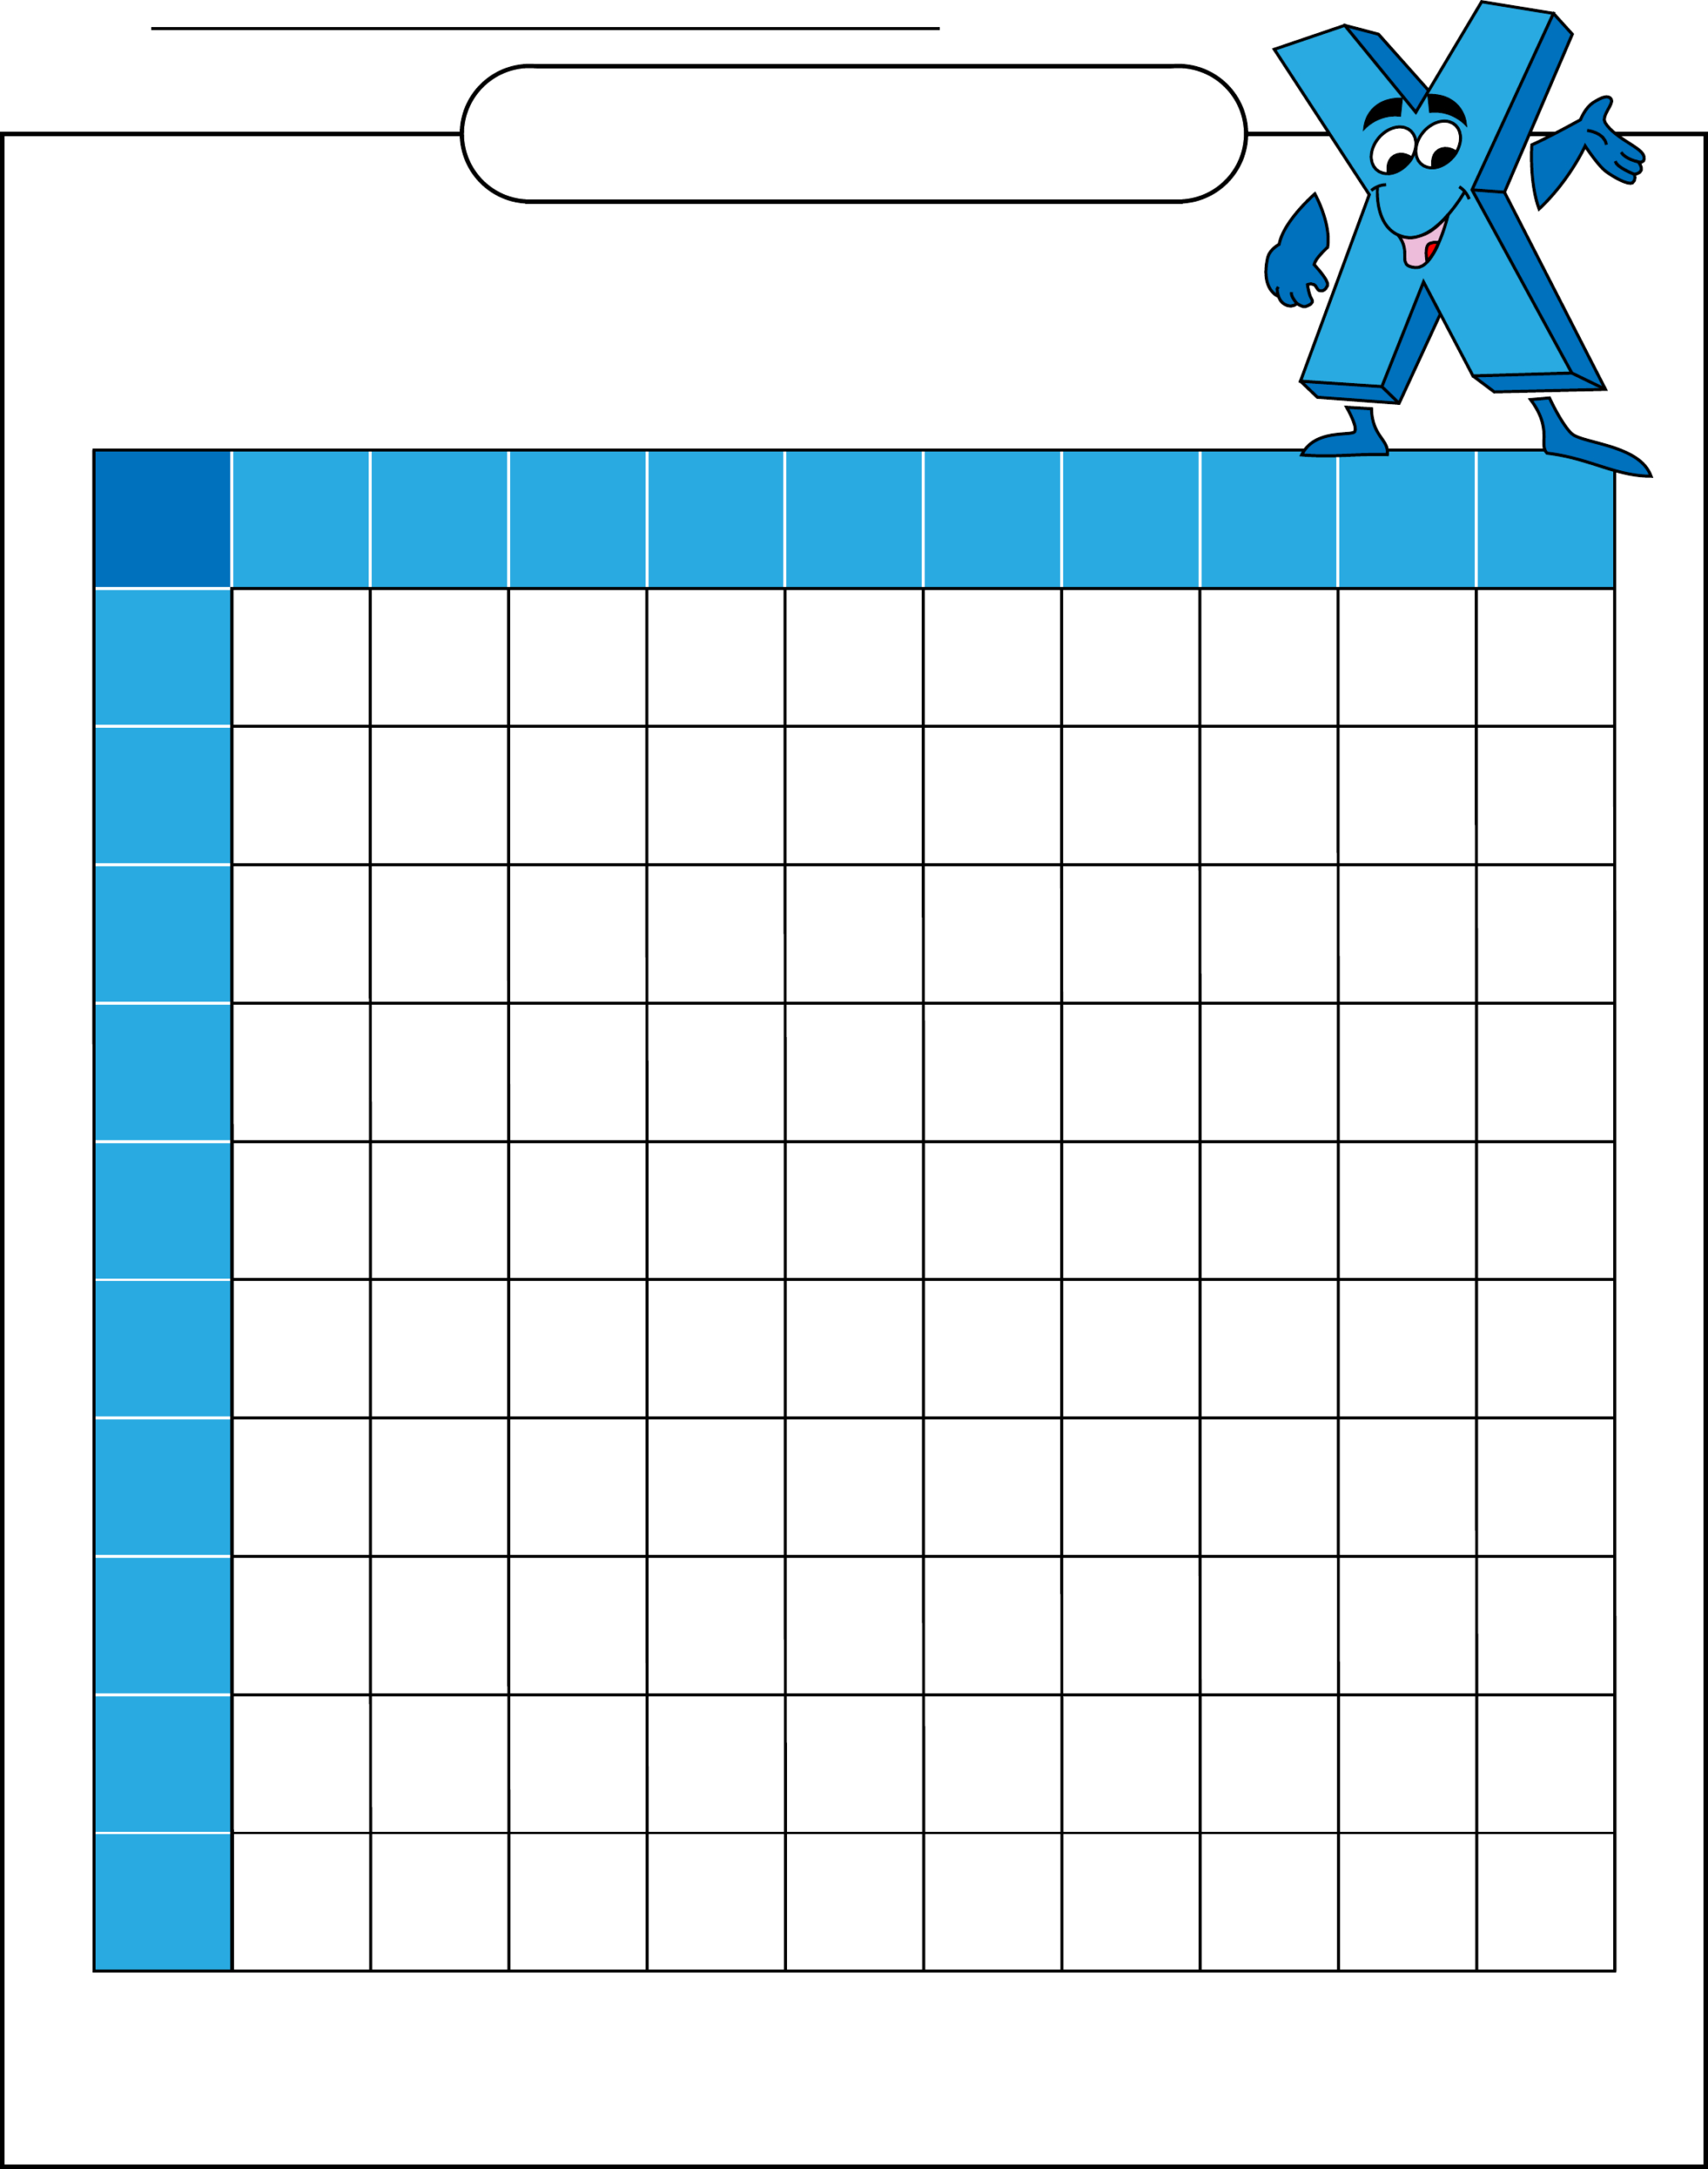 Blank Multiplication Table Free Download inside Printable Multiplication Table Blank